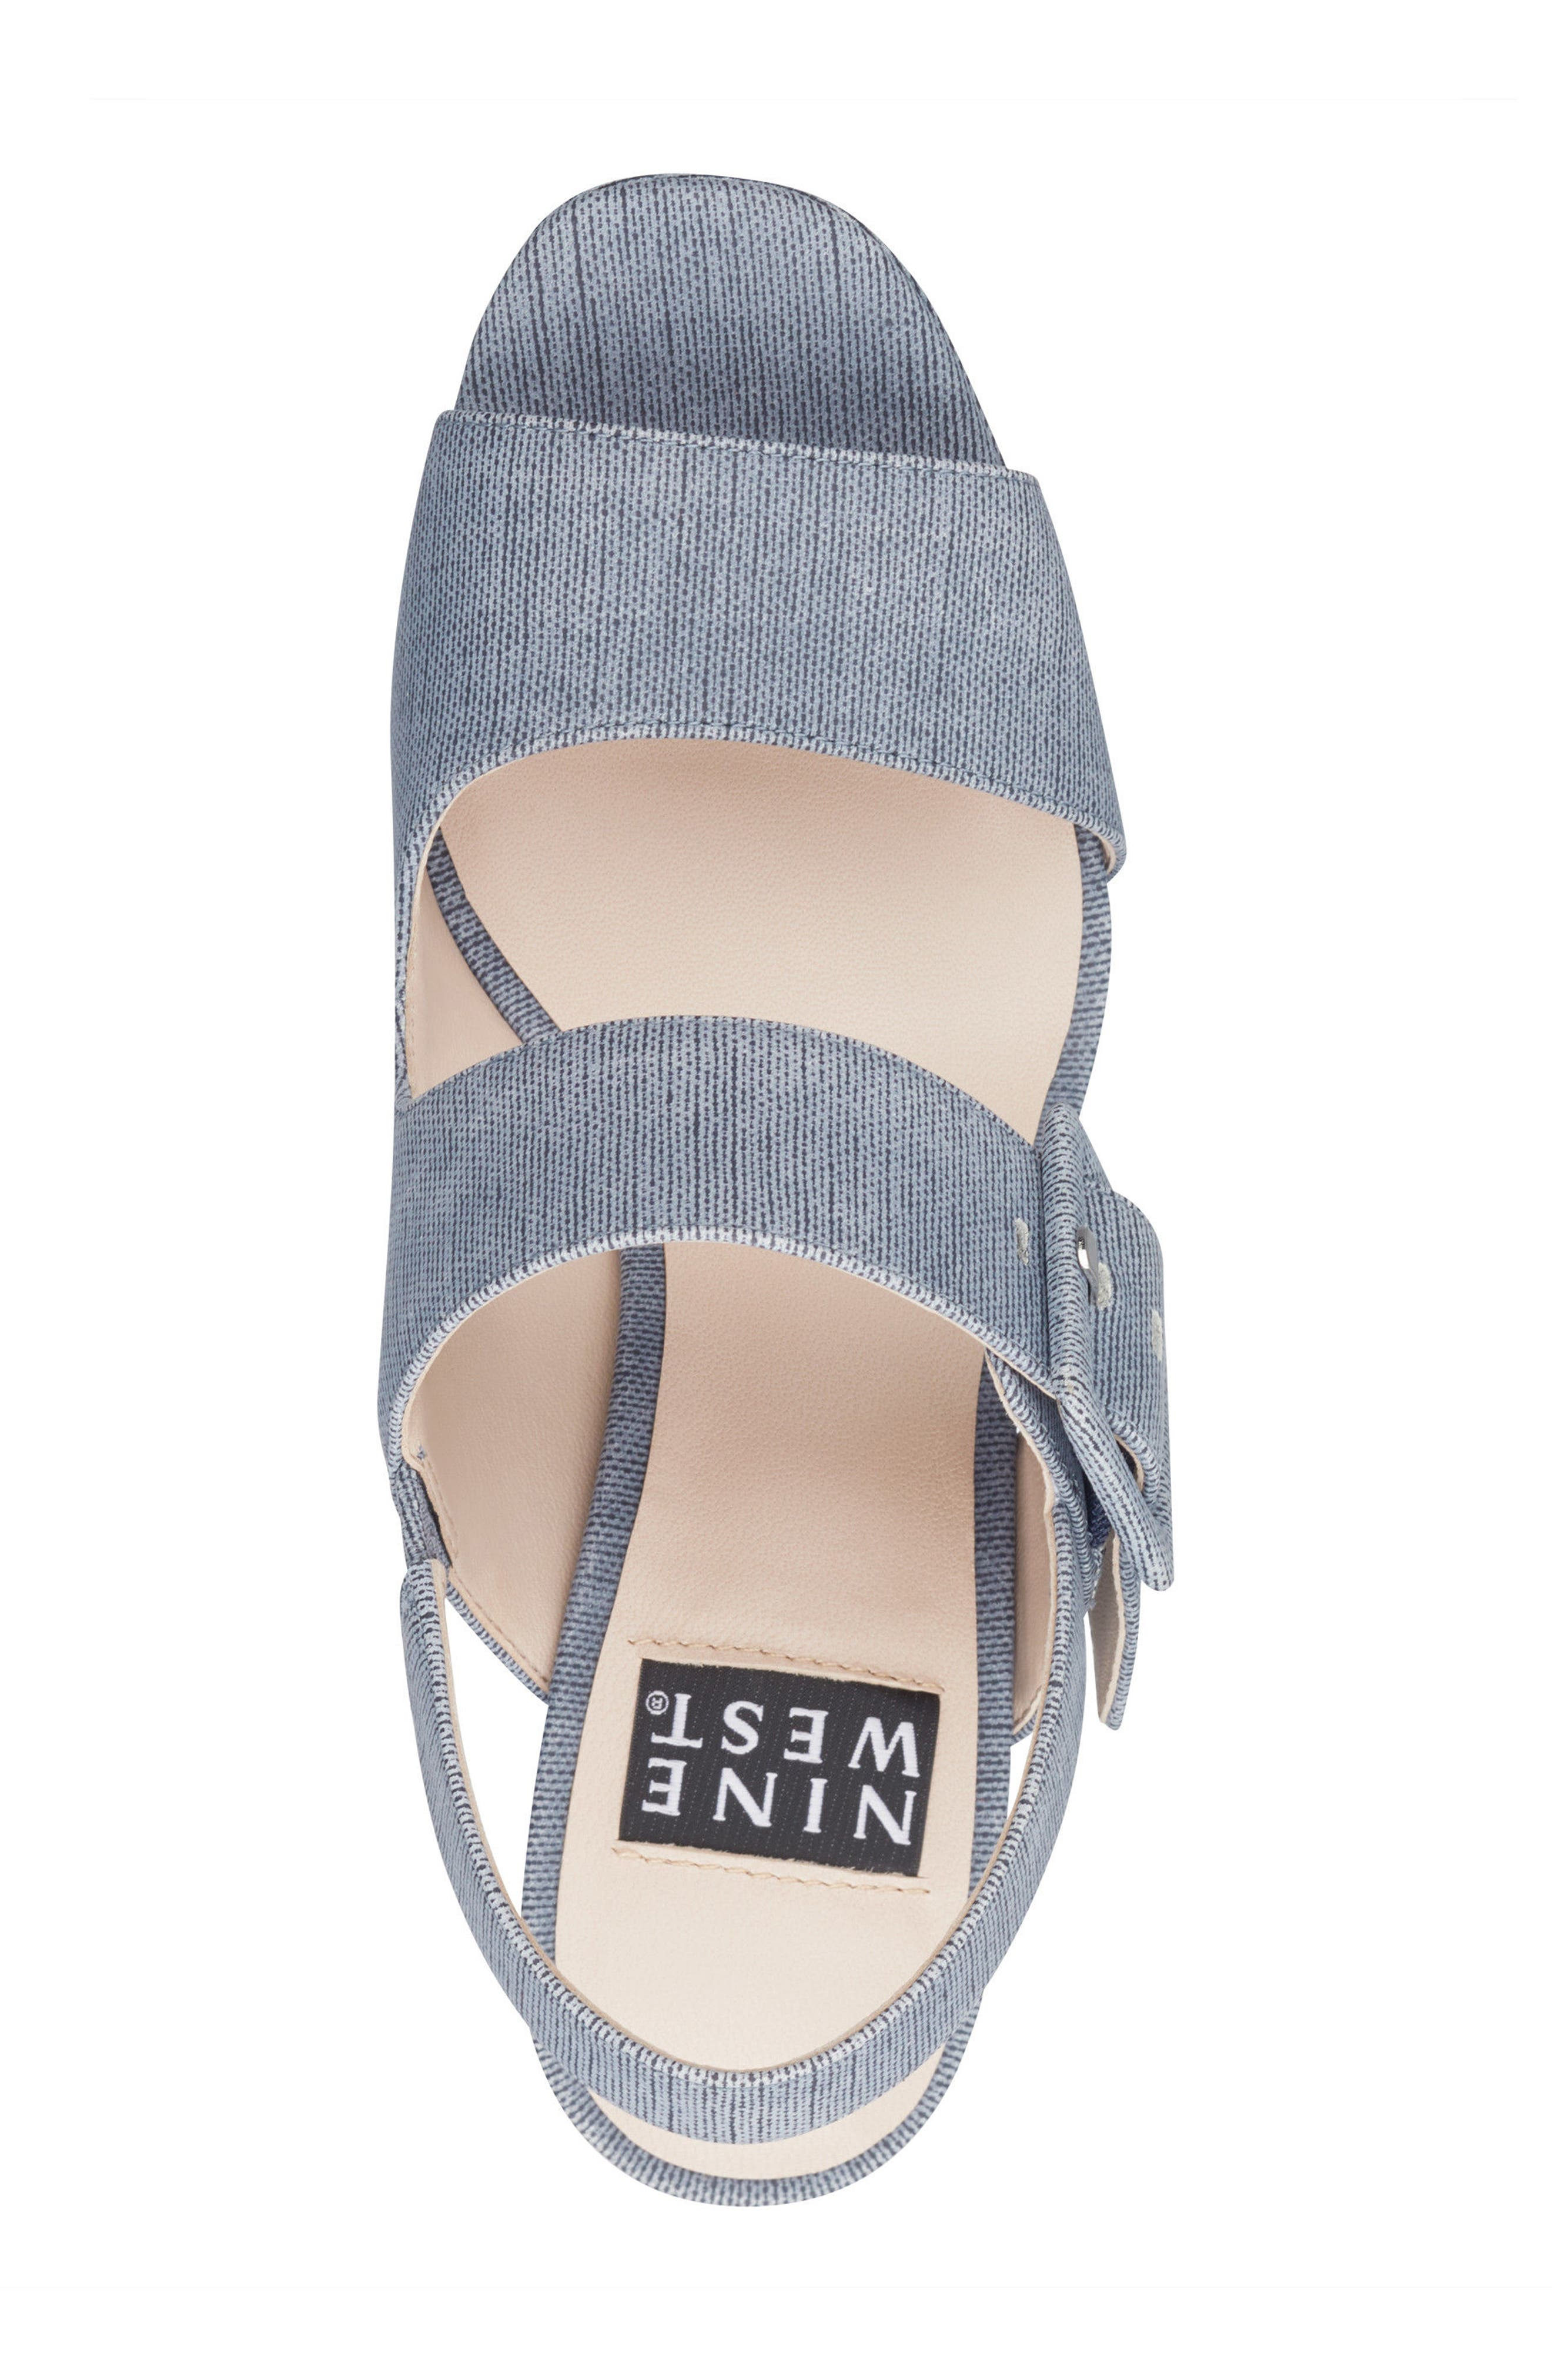 Lexine - 40th Anniversary Capsule Collection Platform Sandal,                             Alternate thumbnail 5, color,                             DARK BLUE FABRIC